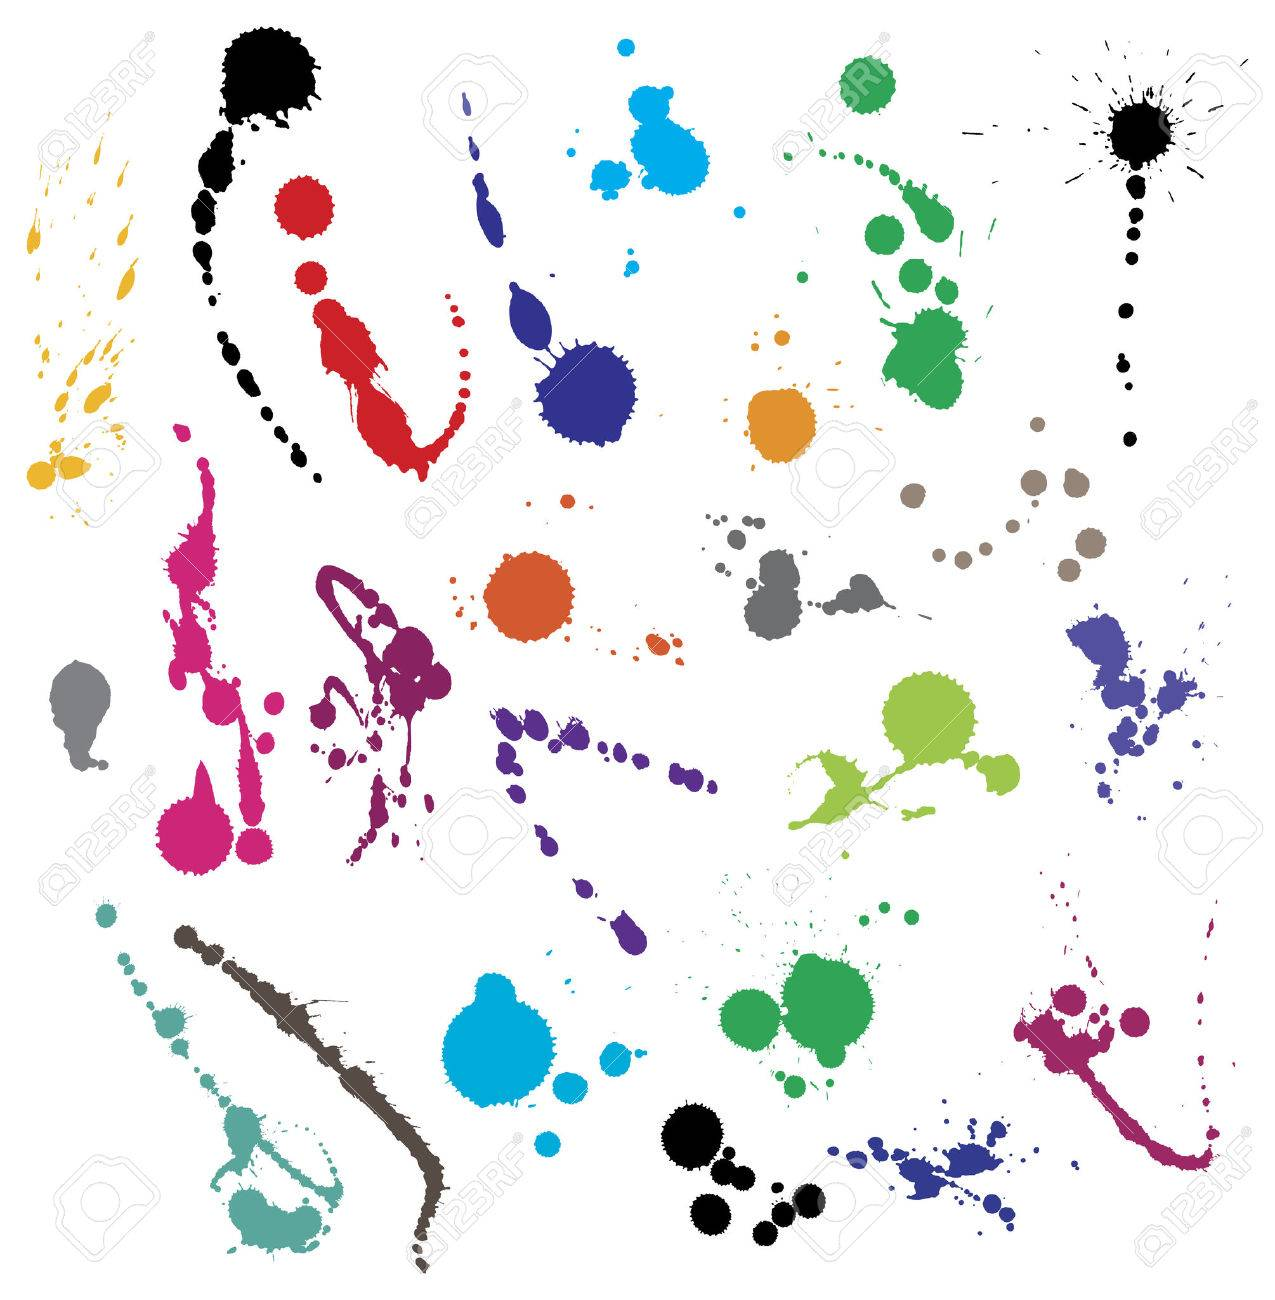 Collection of 24 different ink splatter symbol vector illustrations. Color coded and highly detailed. - 2376048